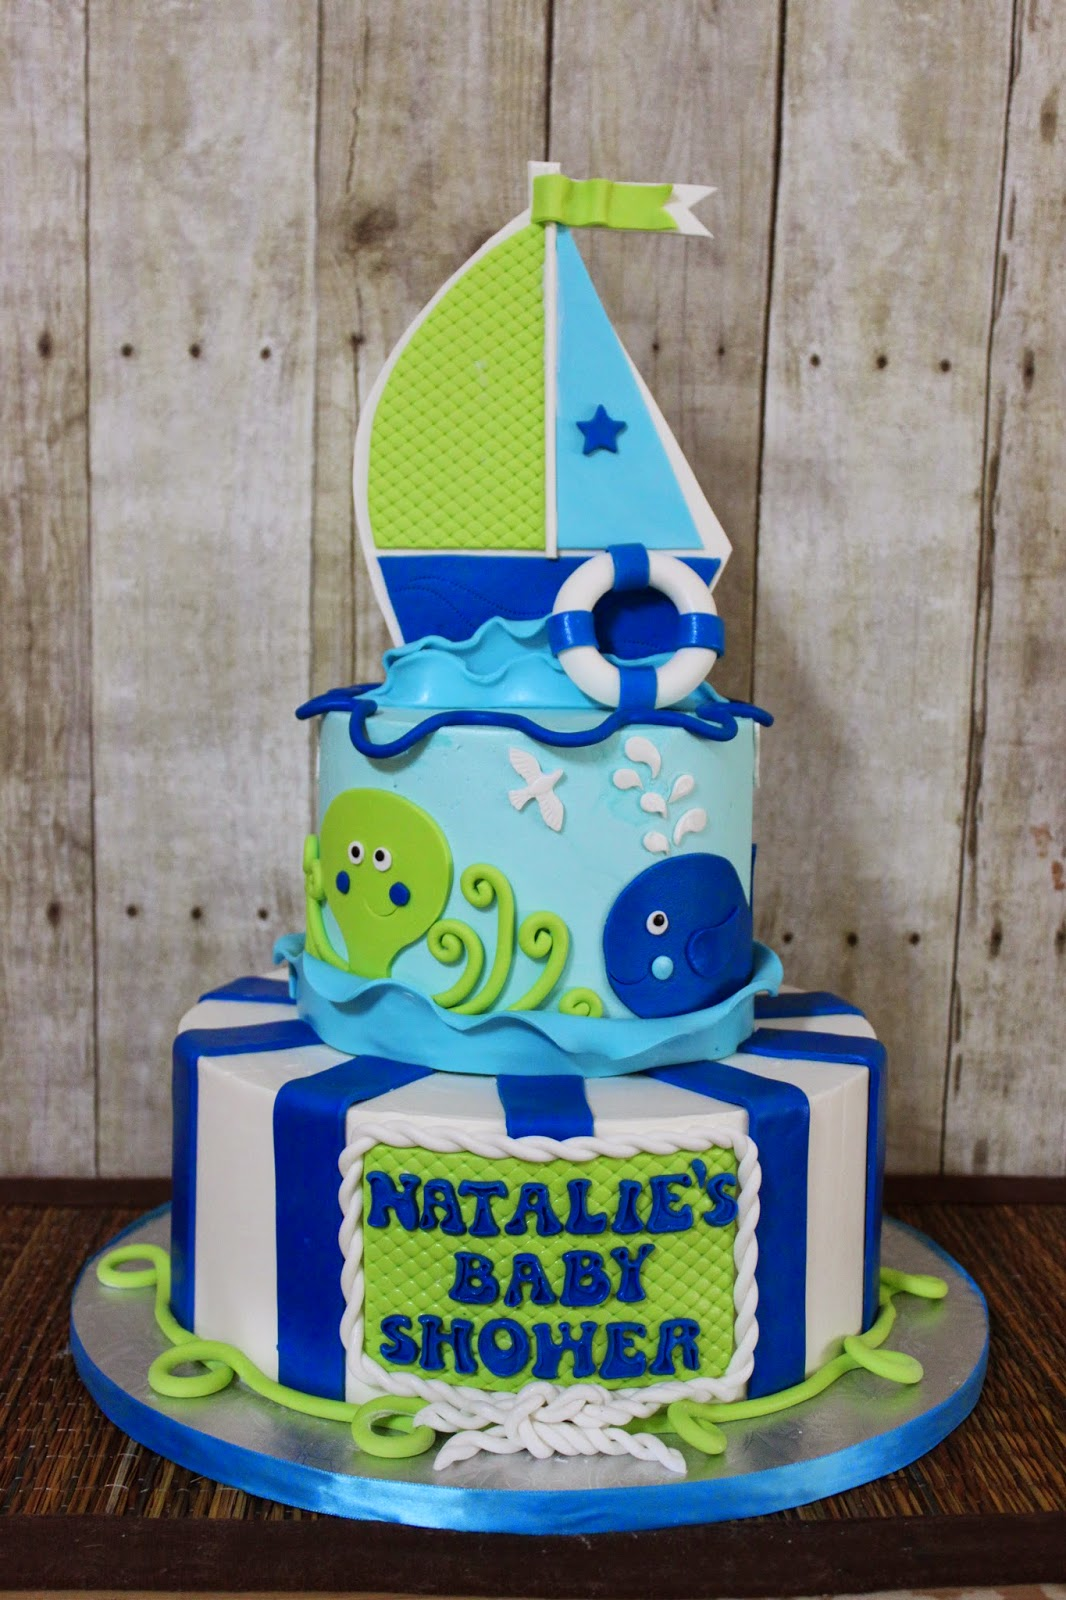 sandra 39 s cakes nautical baby shower cake